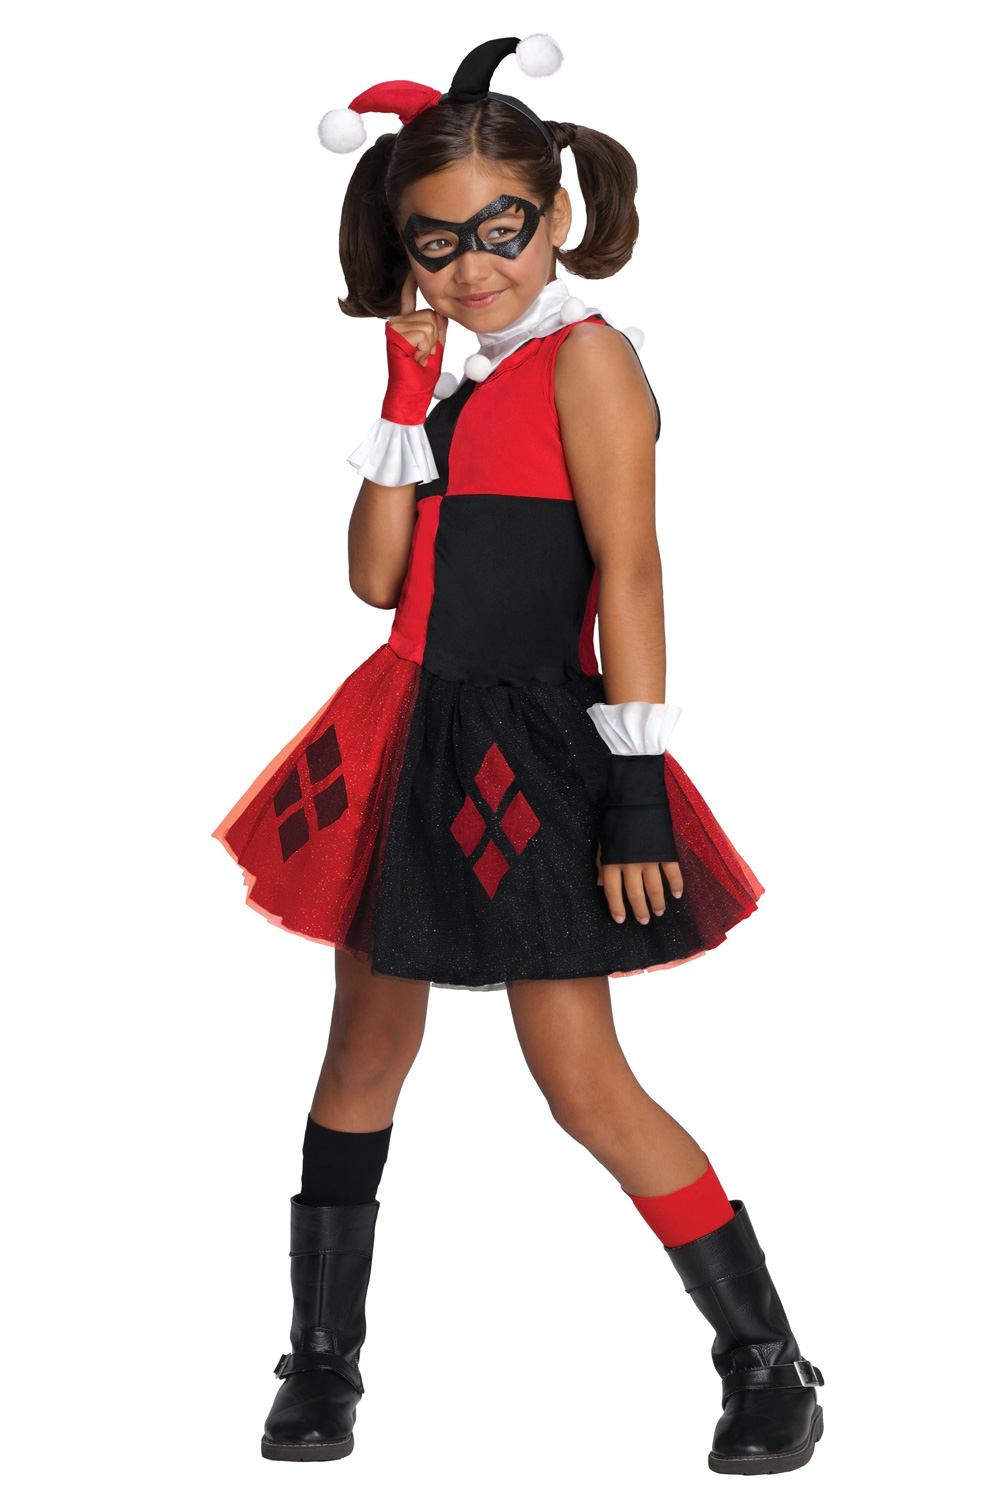 DC Super Villains Harley Quinn Tutu Toddler/Child Costume - PureCostumes.com  sc 1 st  Pure Costumes & DC Super Villains Harley Quinn Tutu Toddler/Child Costume ...